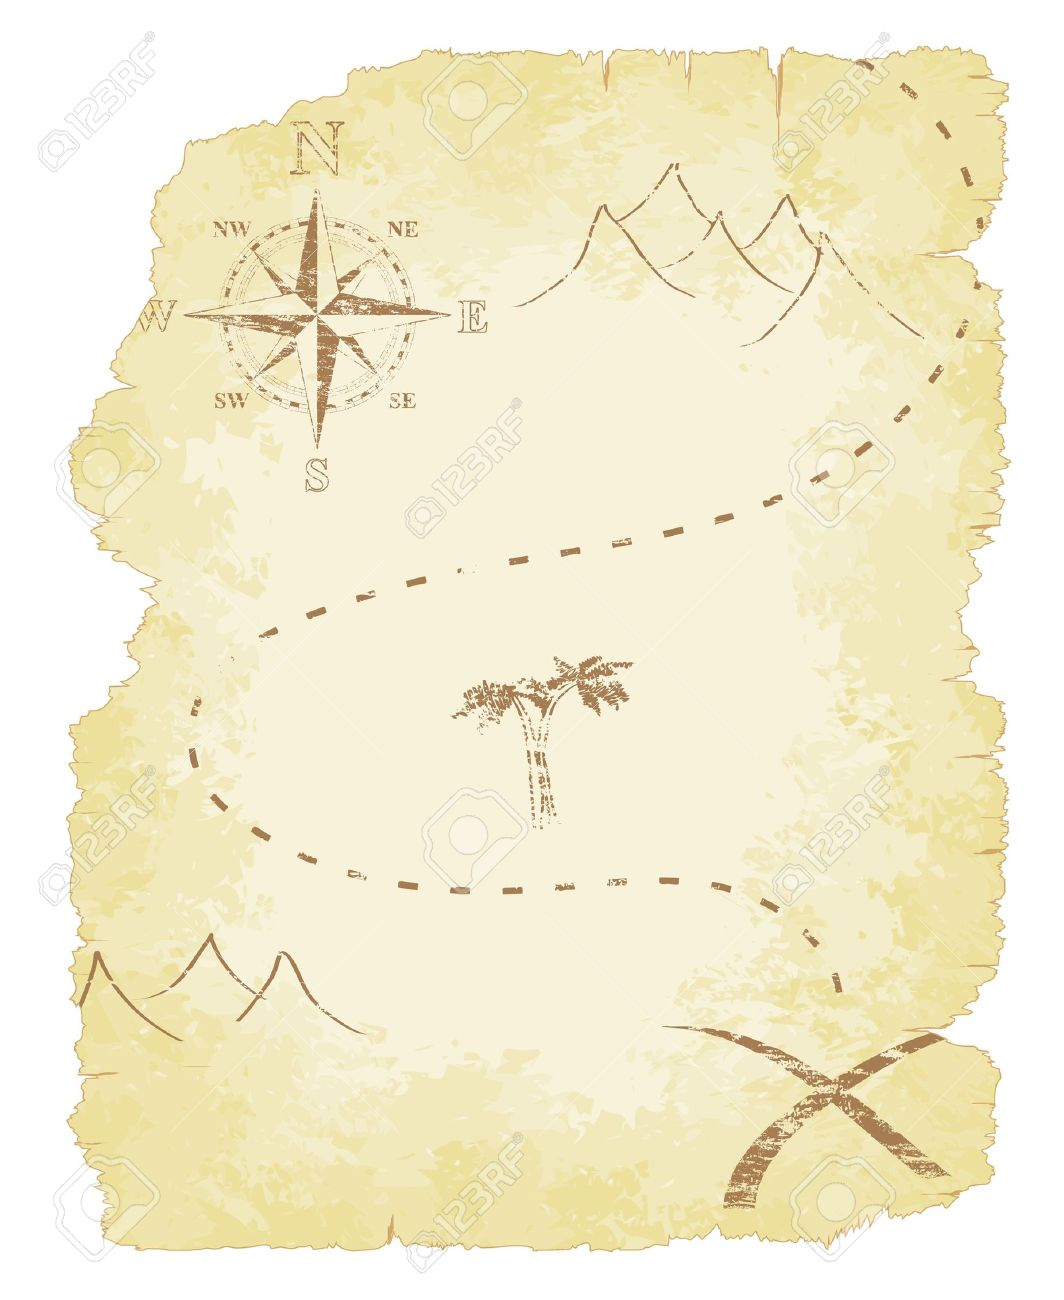 Battered and faded old treasure map - 16657747